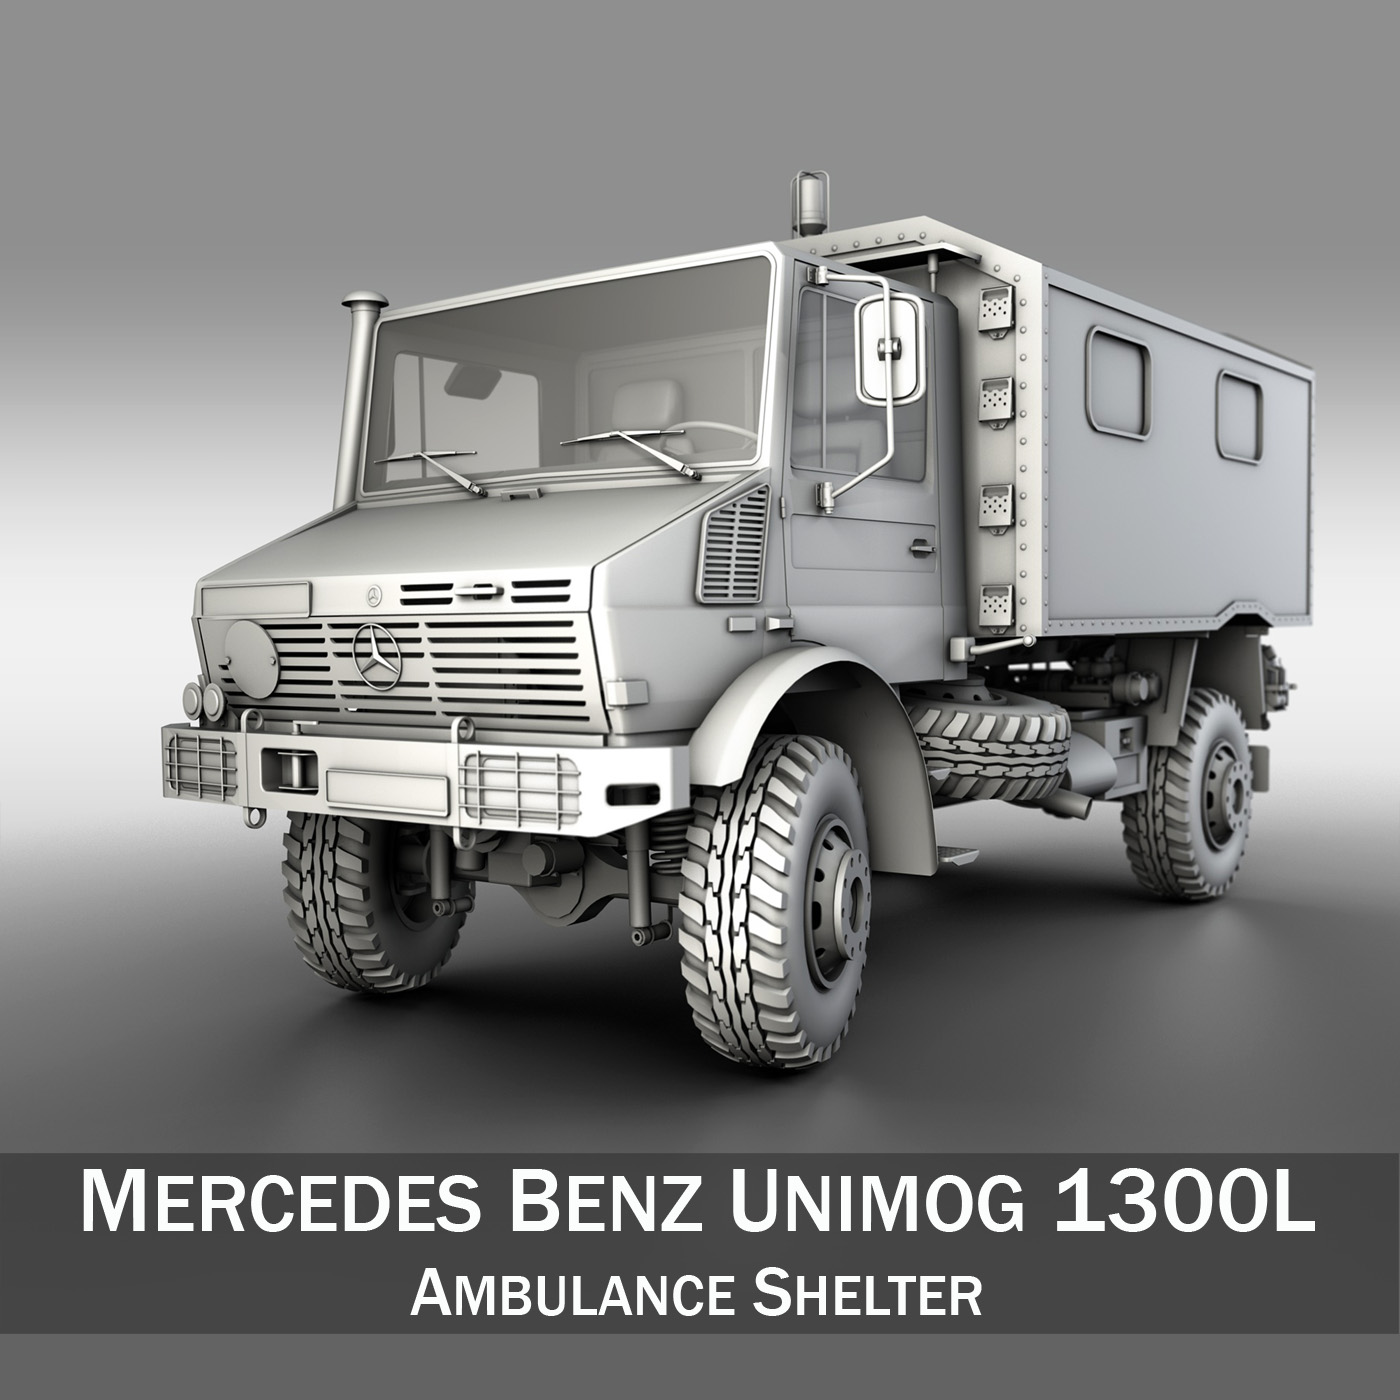 mercedes benz unimog u1300l - ambulance trailer 3d model 3ds fbx c4d lwo obj 189593